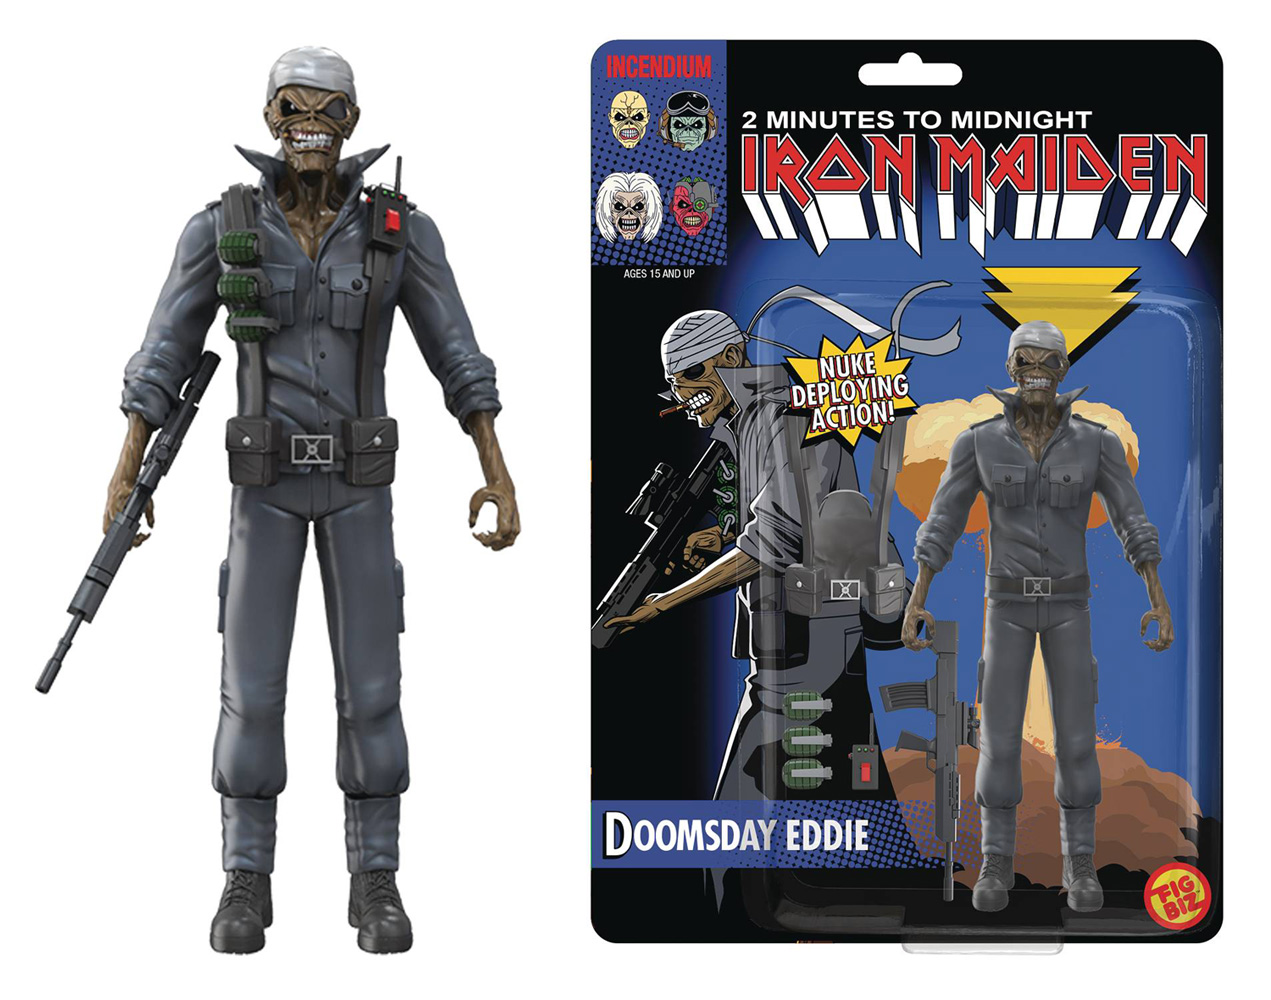 Image: Legacy of the Beast Iron Maiden Action Figure: Doomsday Eddie  (5-inch) - Incendium LLC